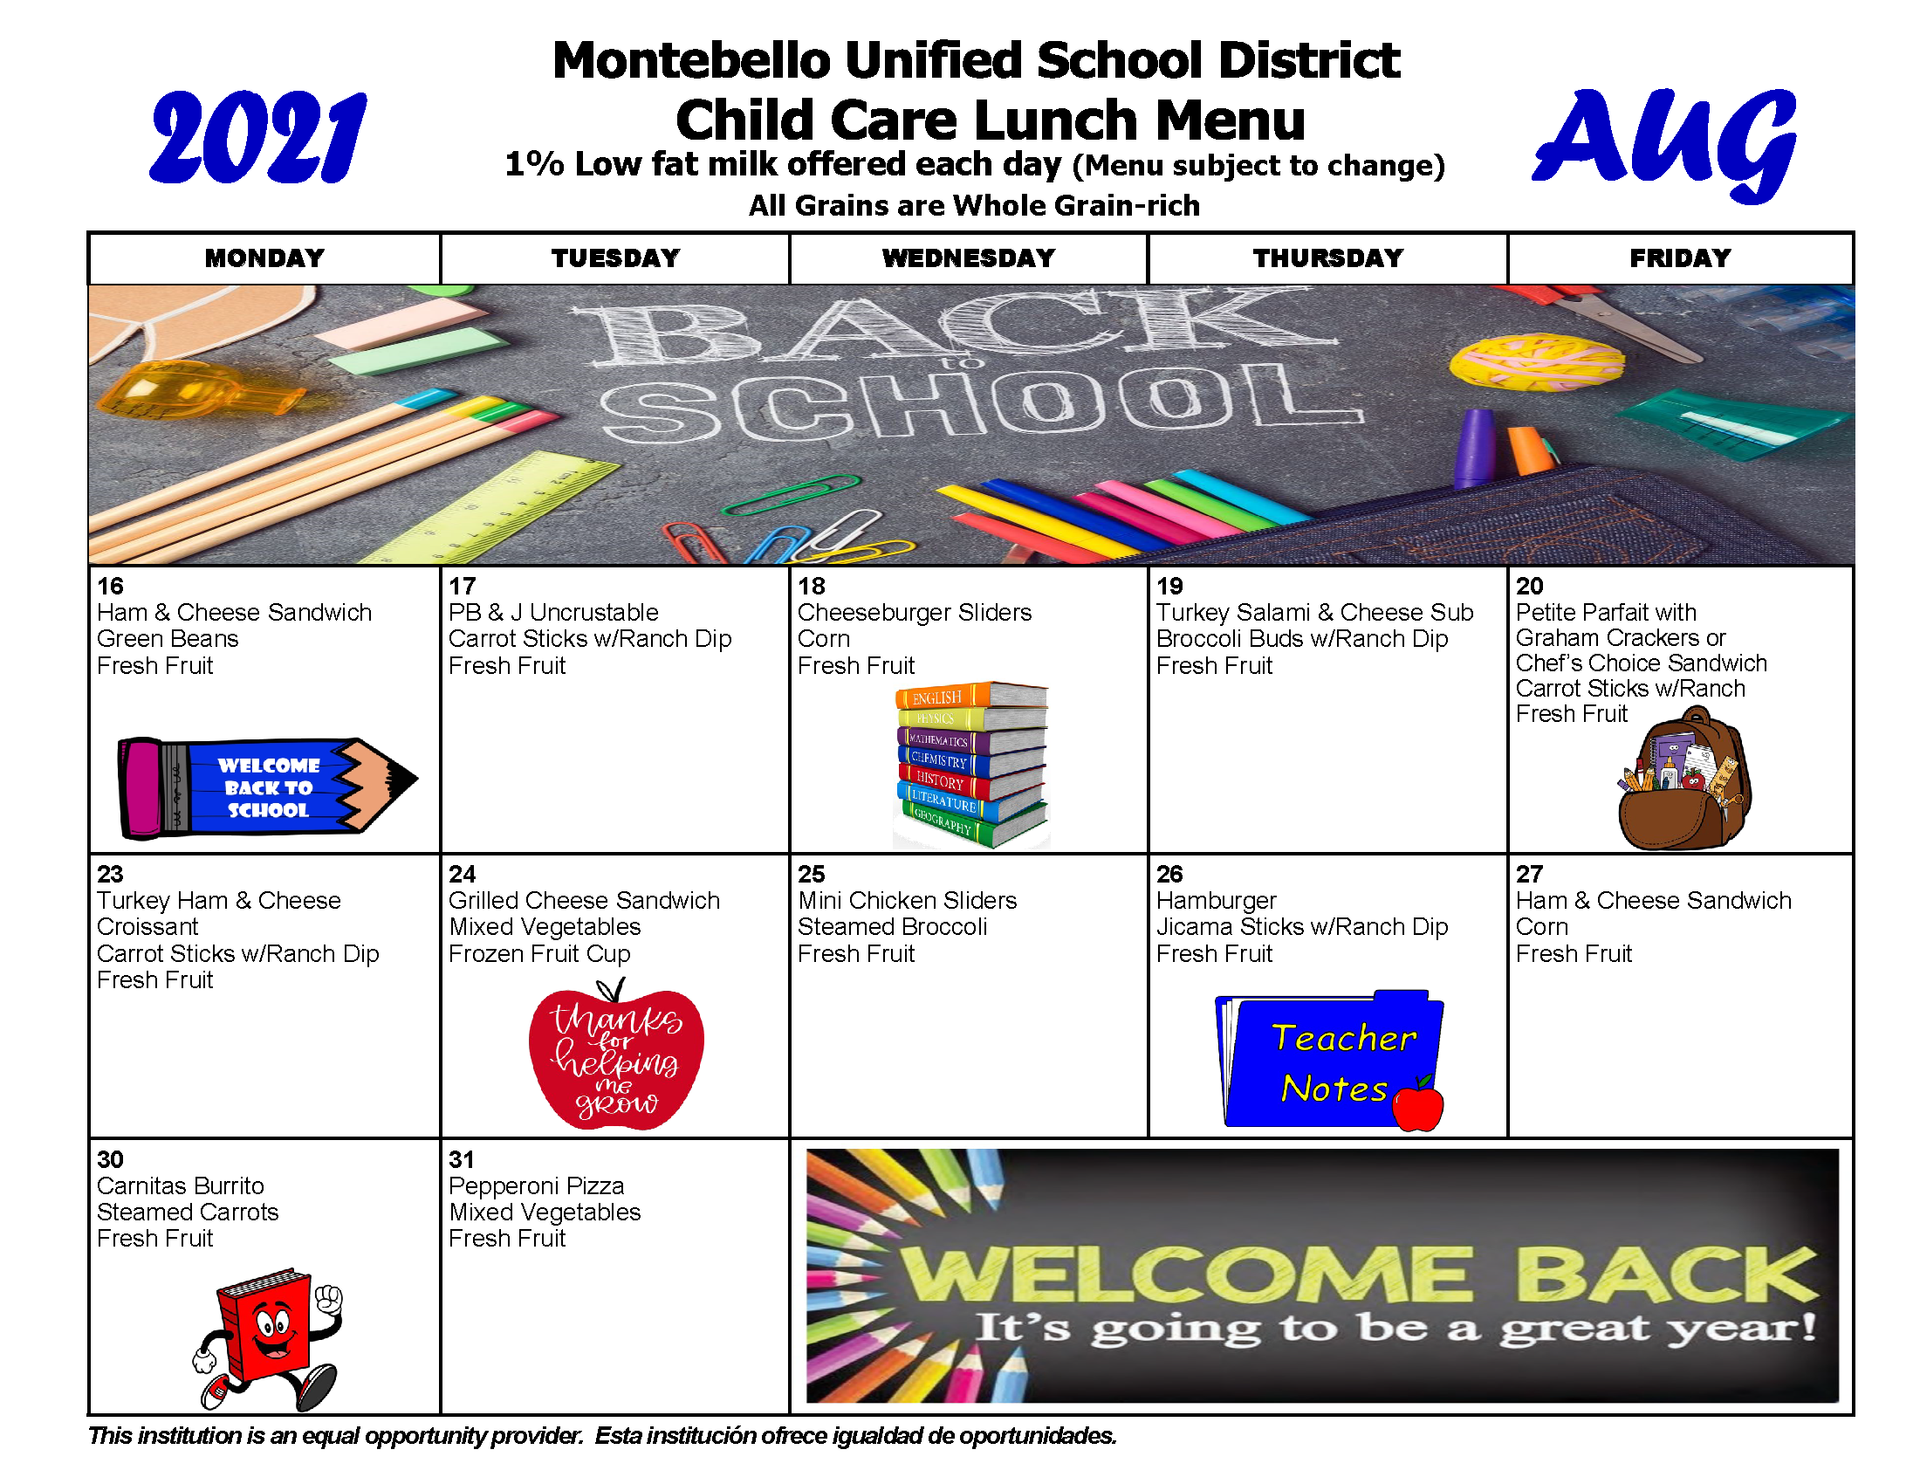 August Child Care Lunch Menu